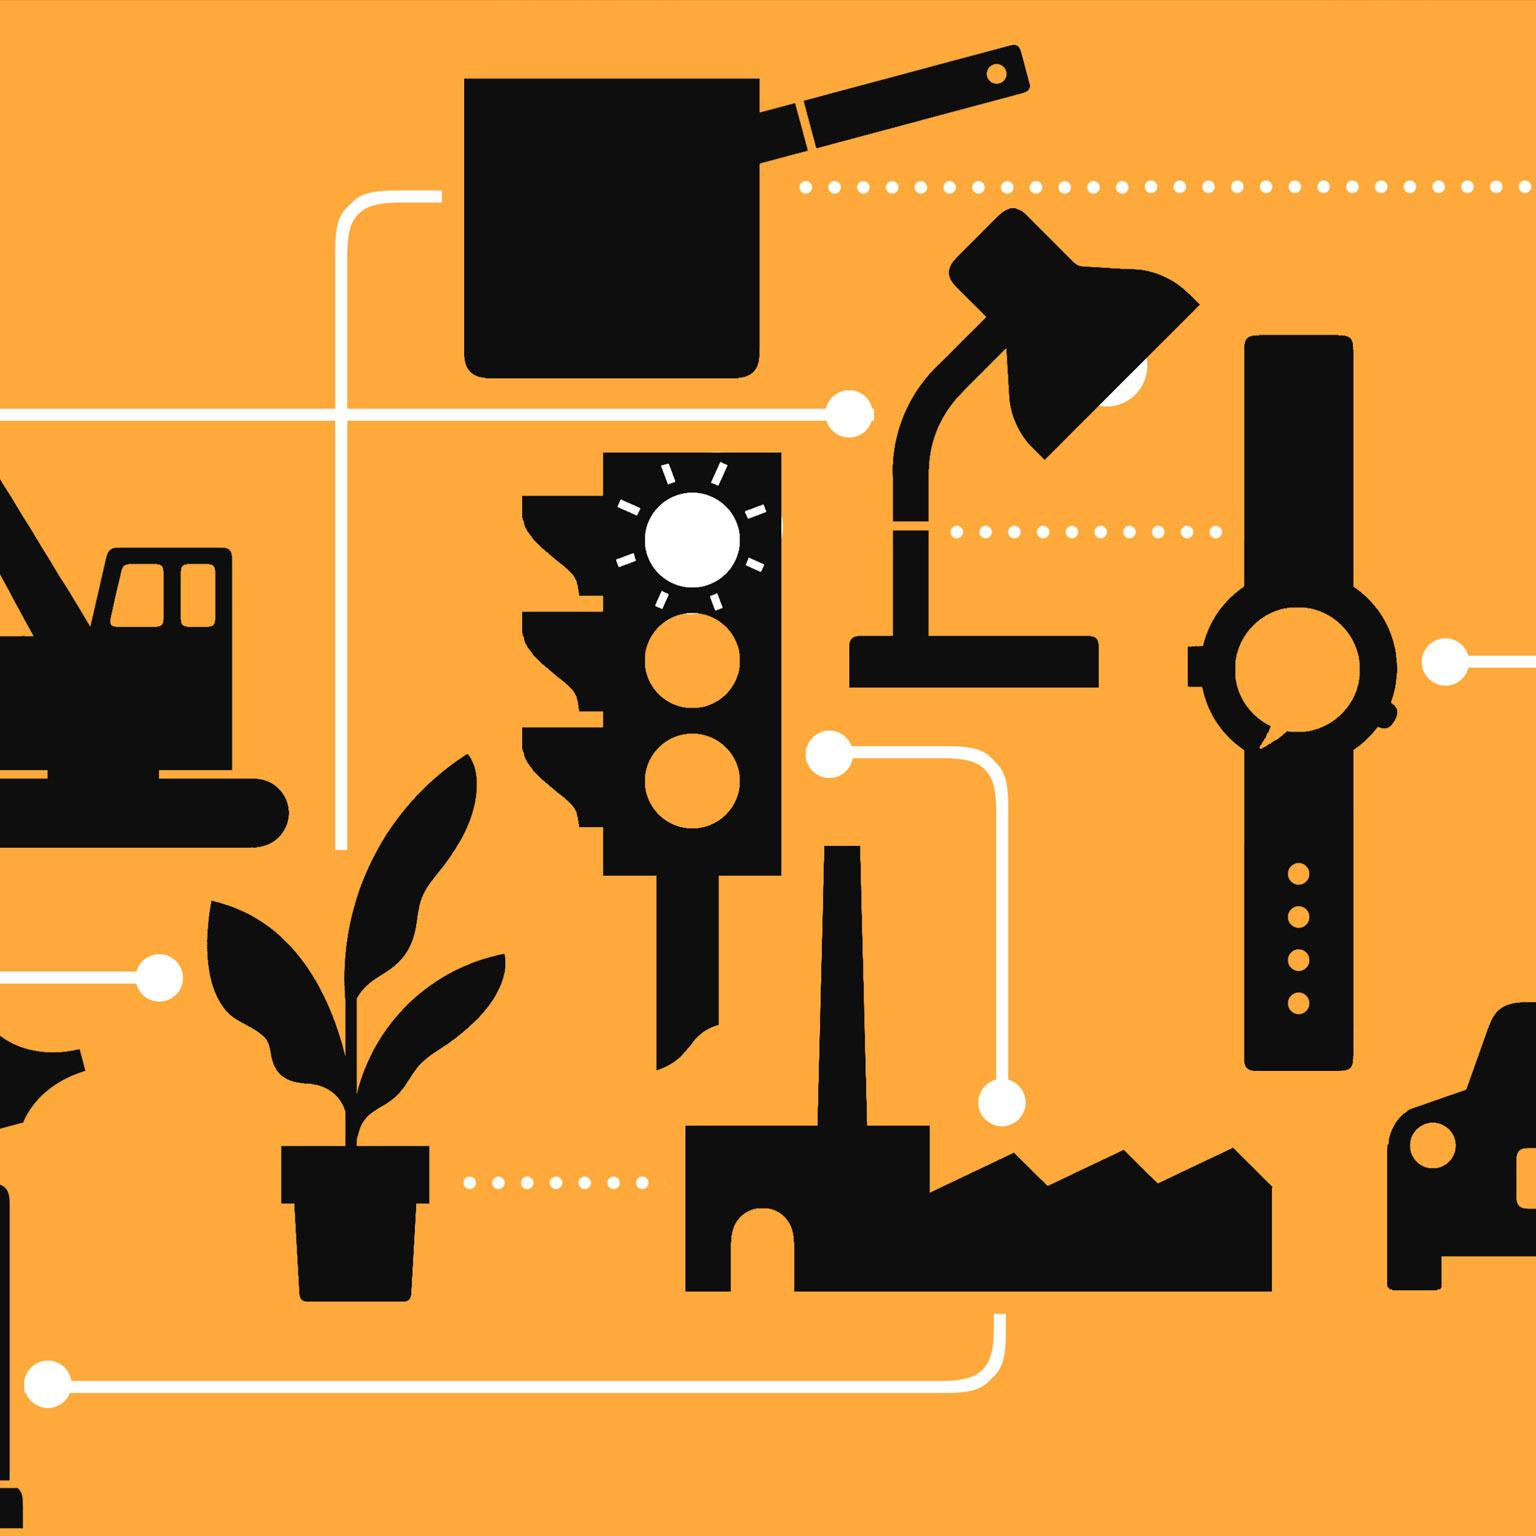 challenges of industries As we review the landscape for small and midsize manufacturing companies, we see considerable challenges a review of some items in the february 2013 ism report on business® is instructive (see.